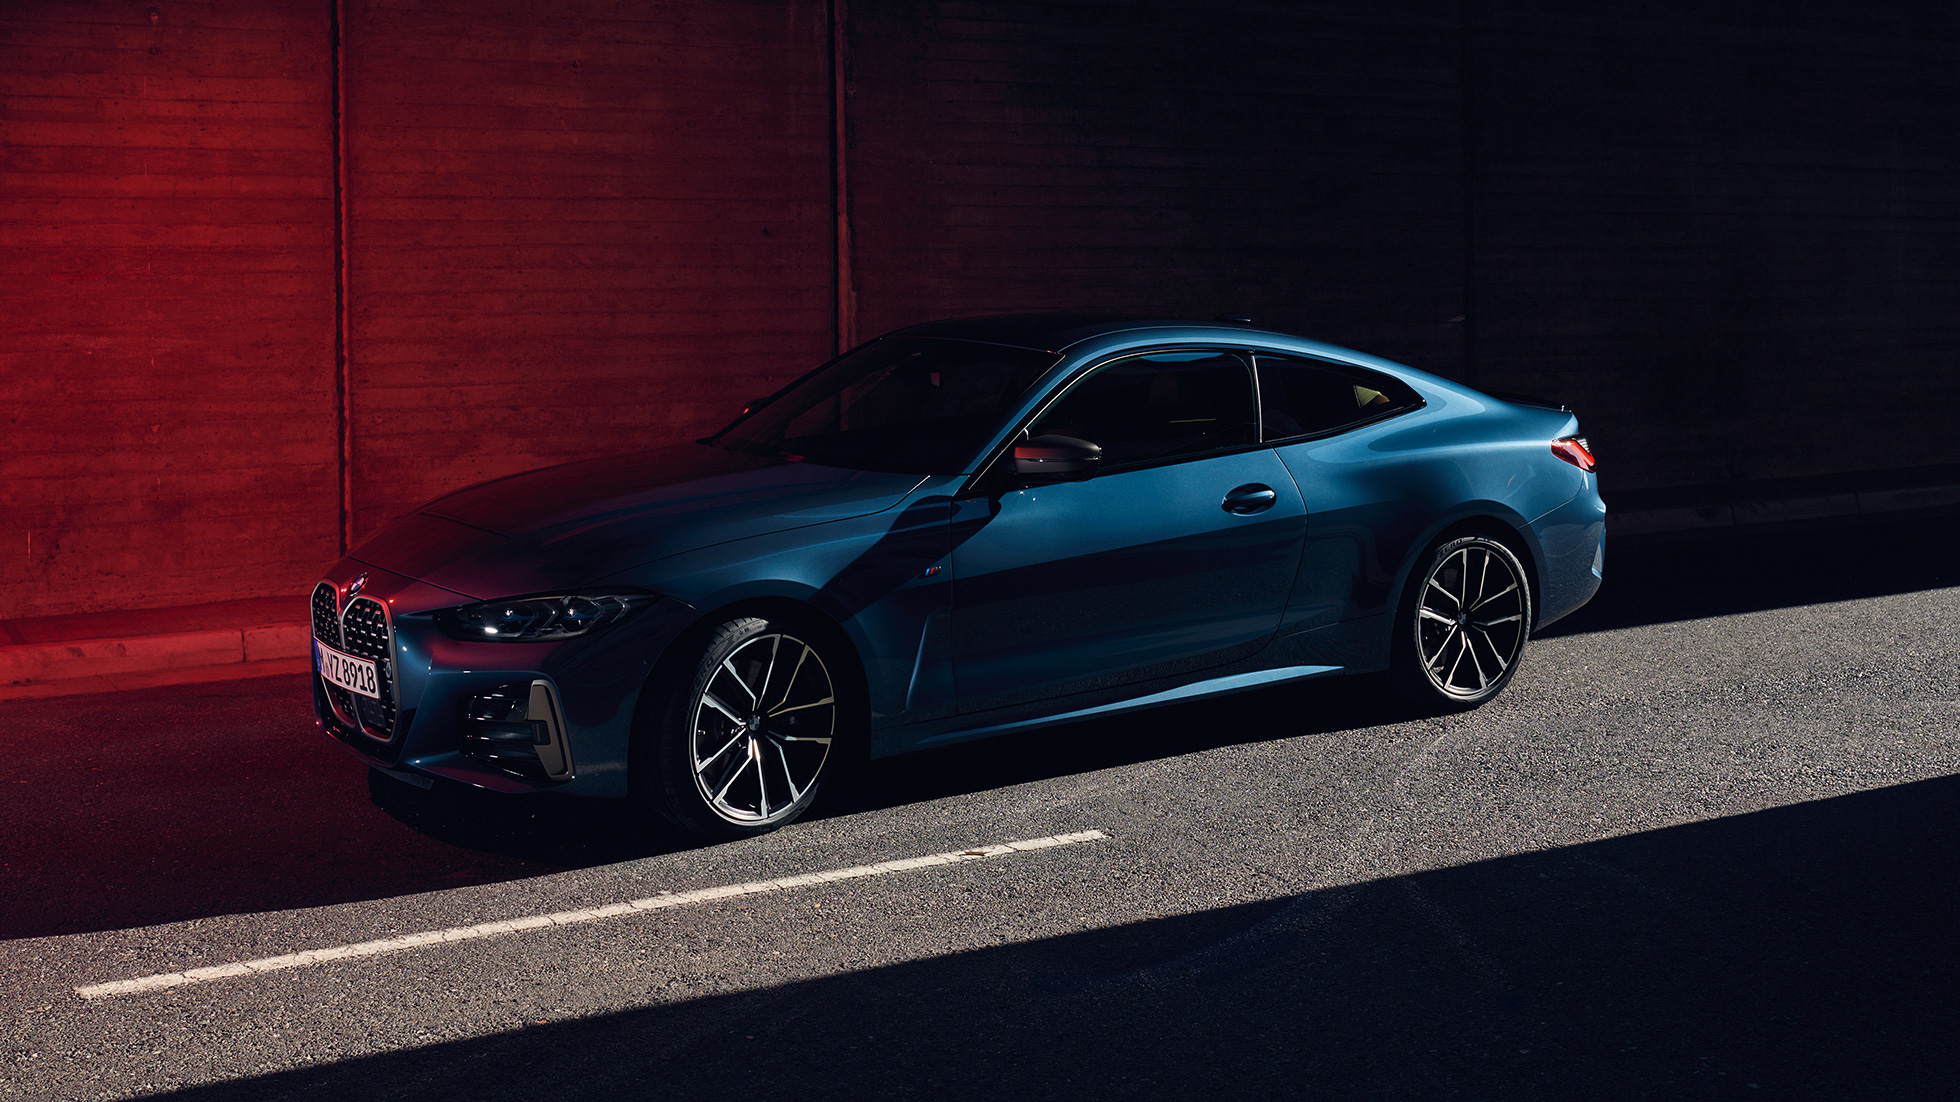 2021 Bmw 4 Series Coupe Wallpapers 3 Bmw Serie 4 Coupe 2919 1960x1102 Download Hd Wallpaper Wallpapertip